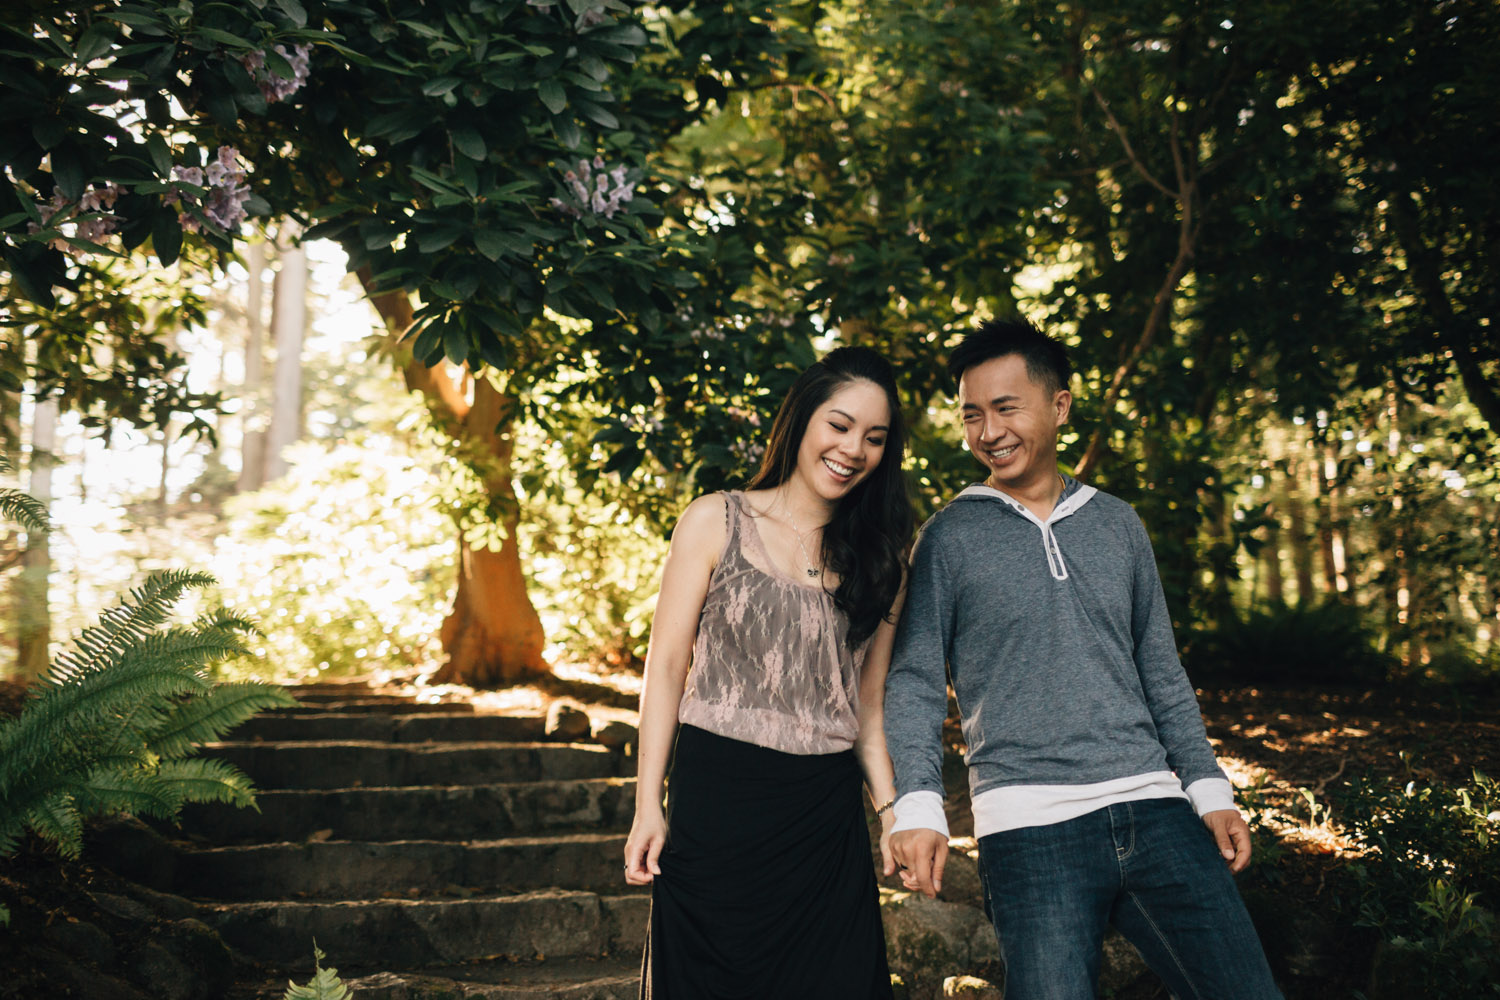 stanley park rose garden engagement photography in vancouver